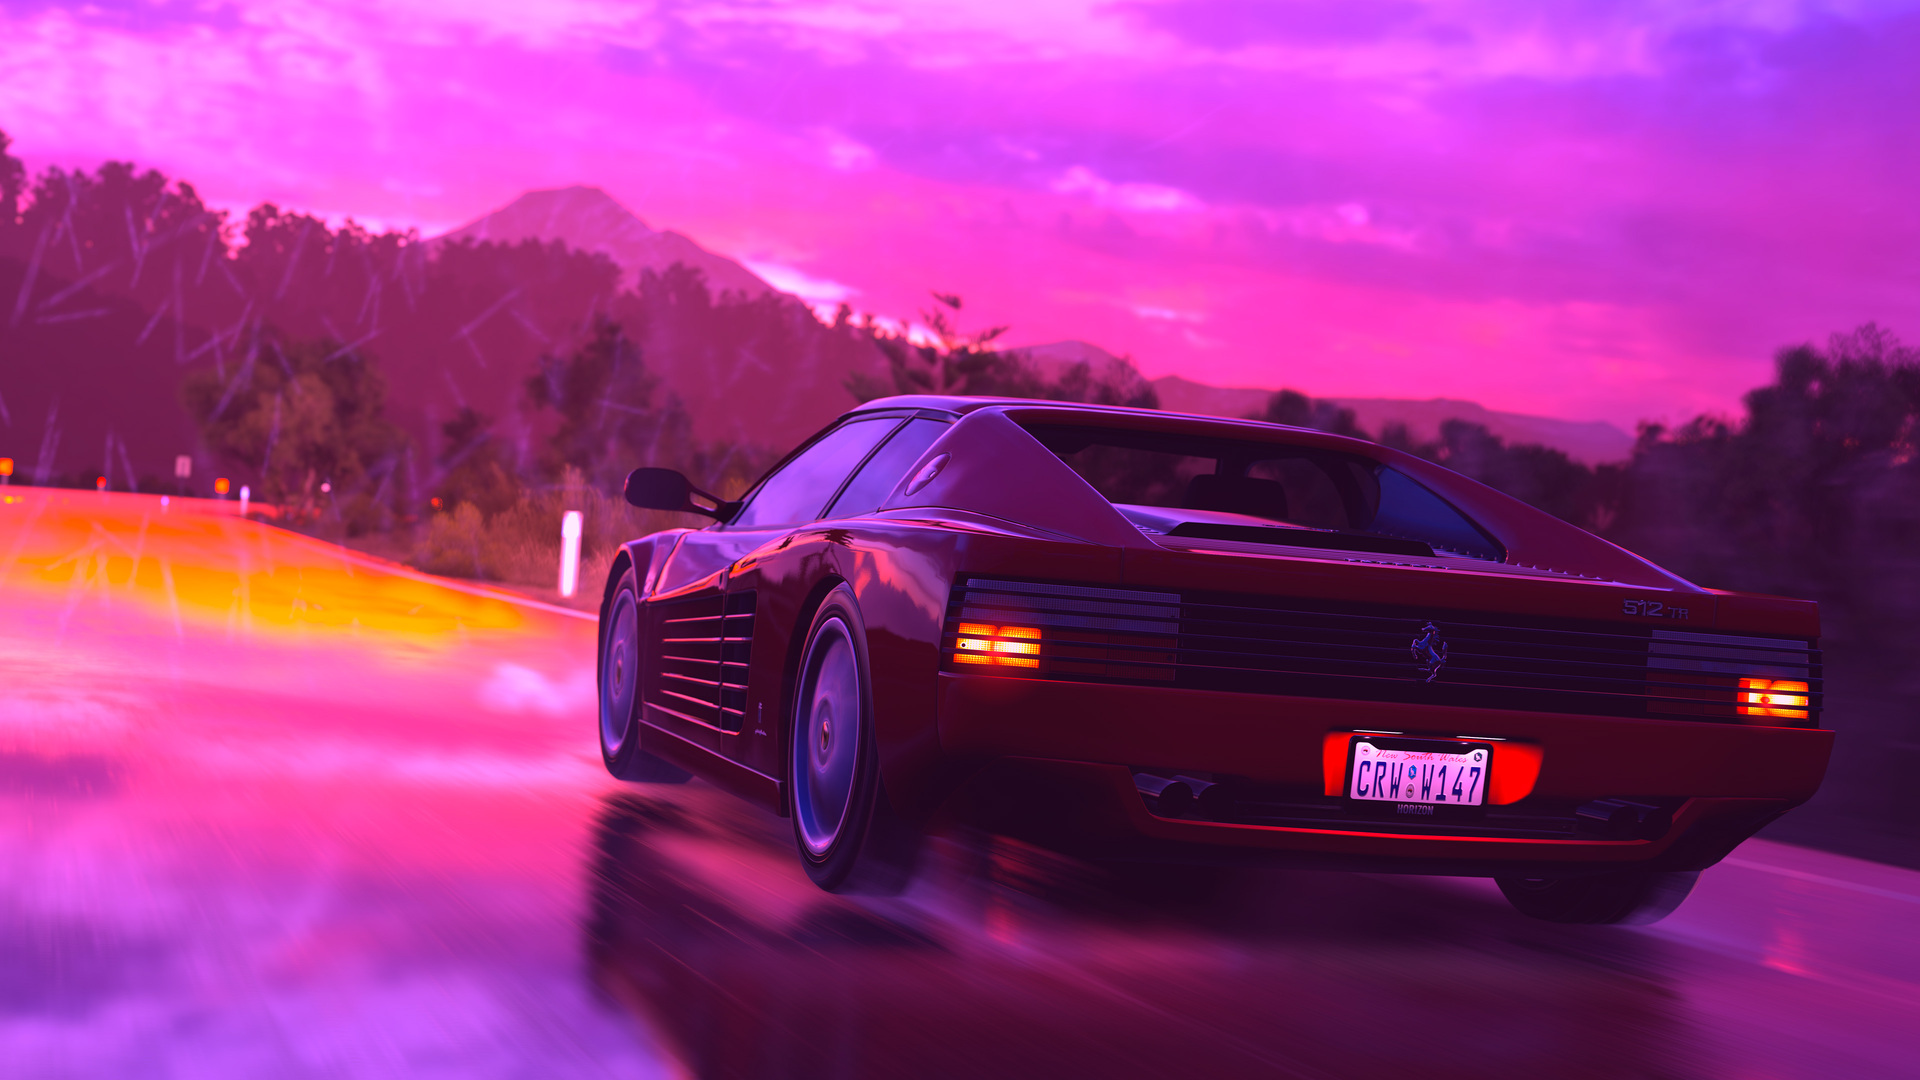 Hotline Miami Car Wallpaper 1920x1080 Ferrari Sports Car Retrowave Art 4k Laptop Full